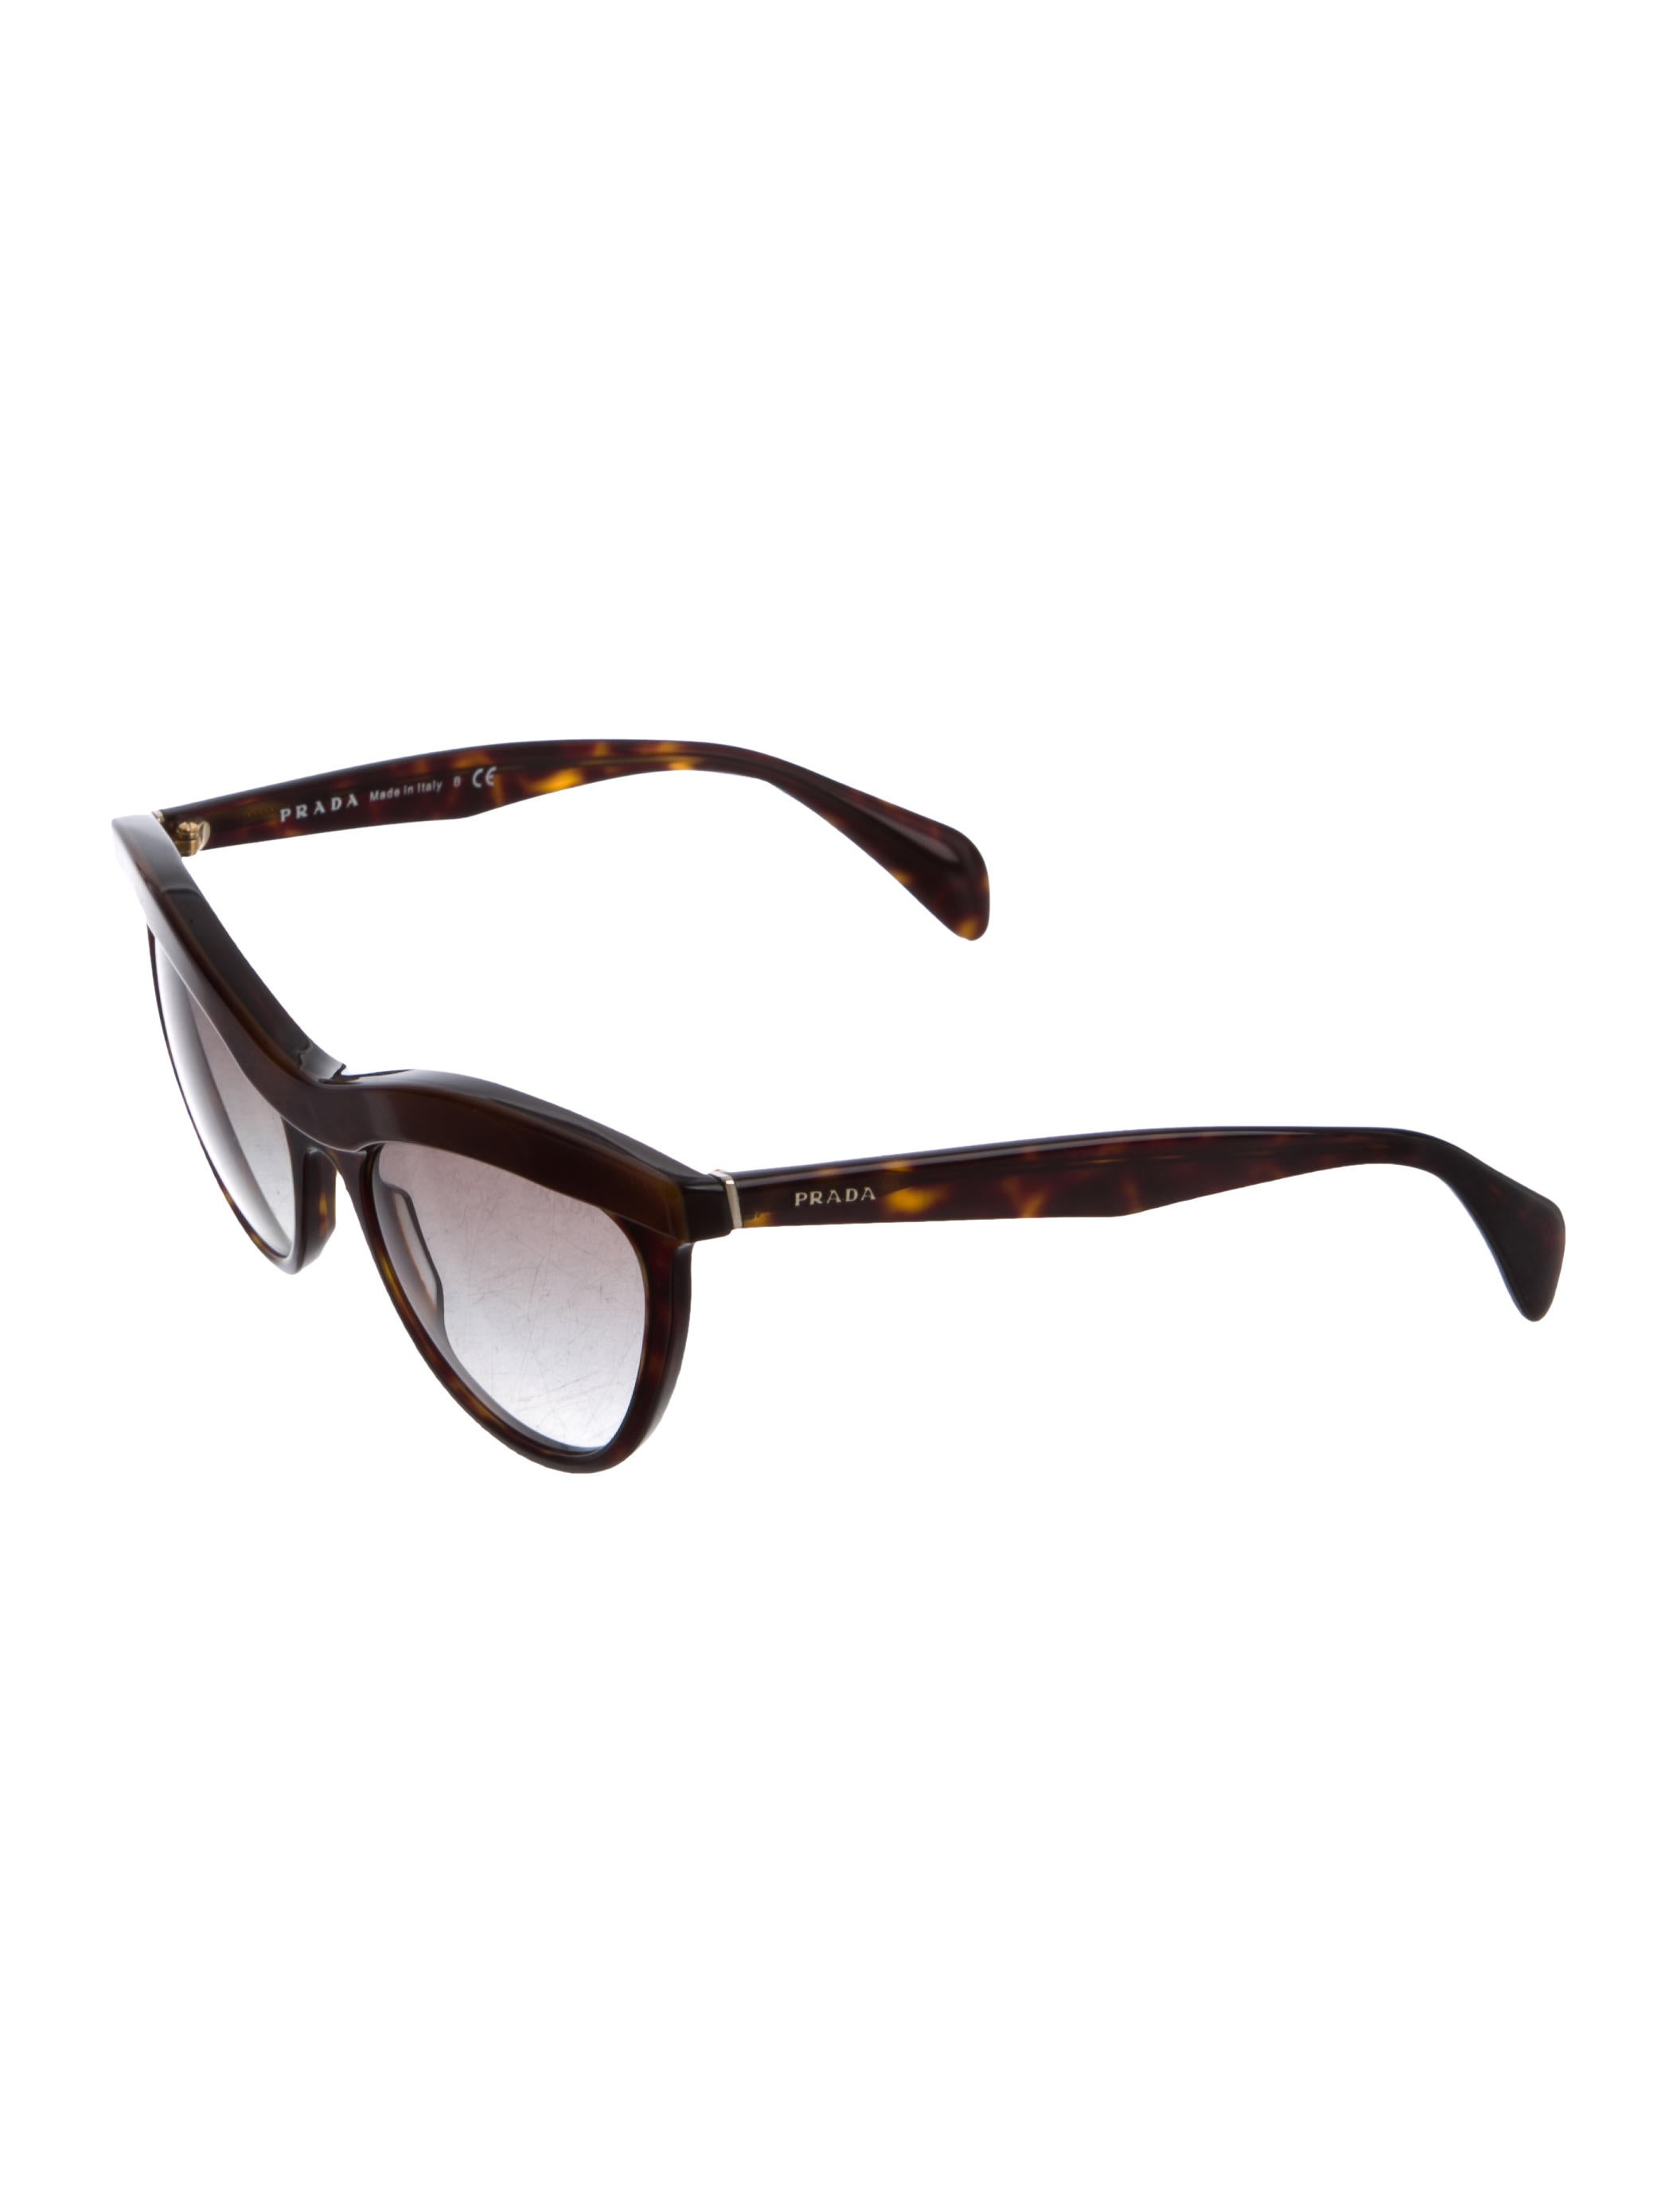 cd4636d269 Prada Tortoise Shell Sunglasses Cat Eye